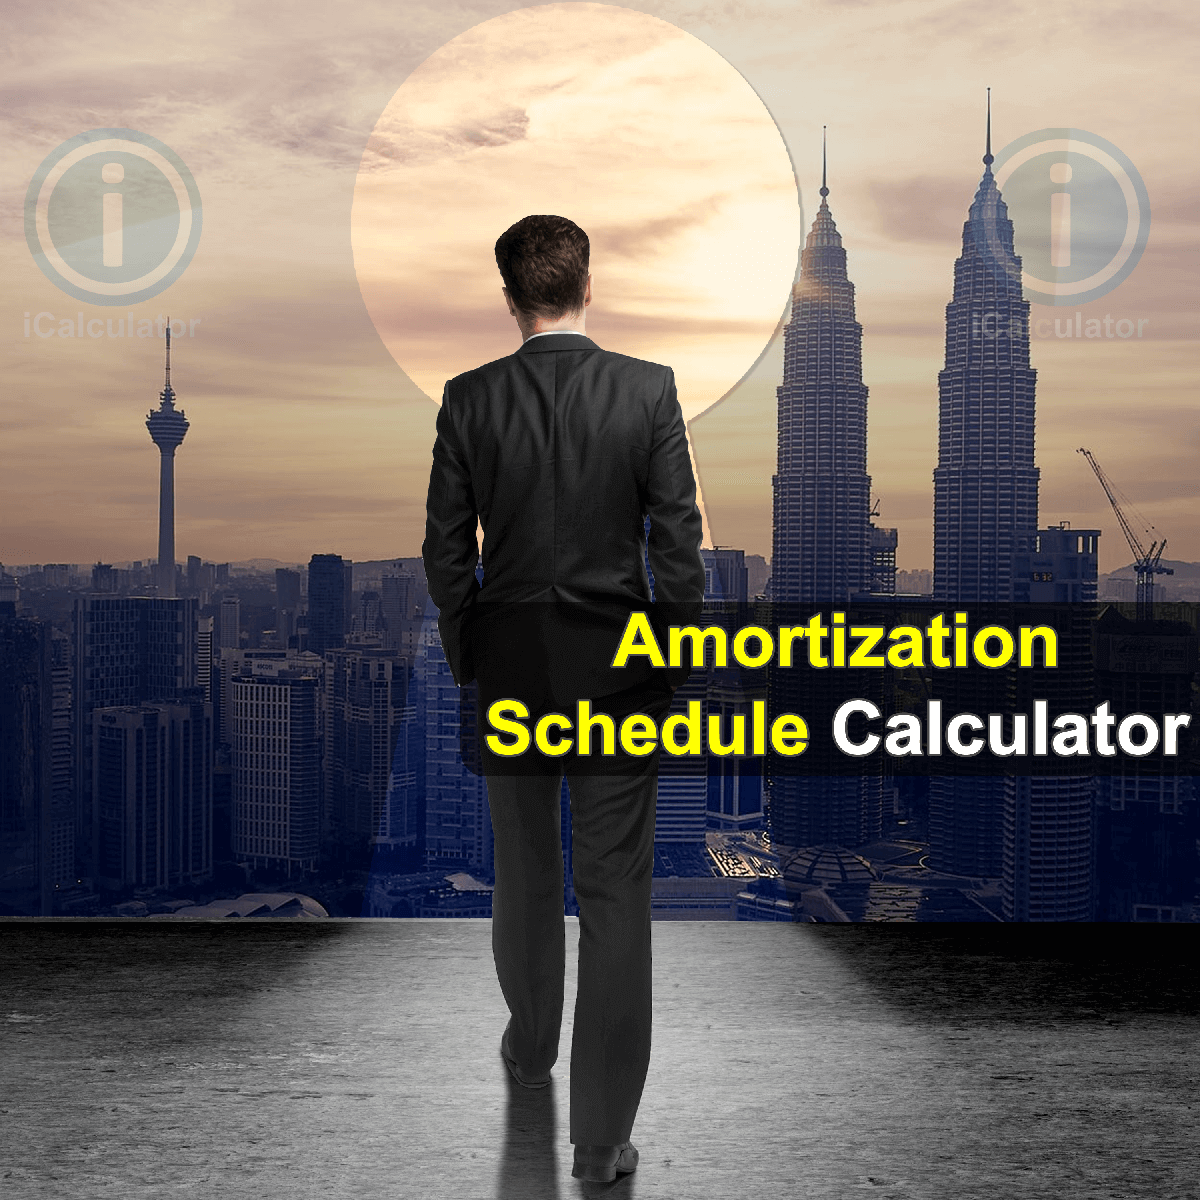 Amortization Schedule Calculator. This image provides details of how to calculate amortization using a calculator and notepad. By using the Amortization Schedule formula, the Amortization Schedule Calculator provides a true calculation of the monthly repayments and the amount of interest from borrowing or investing using amortization formula